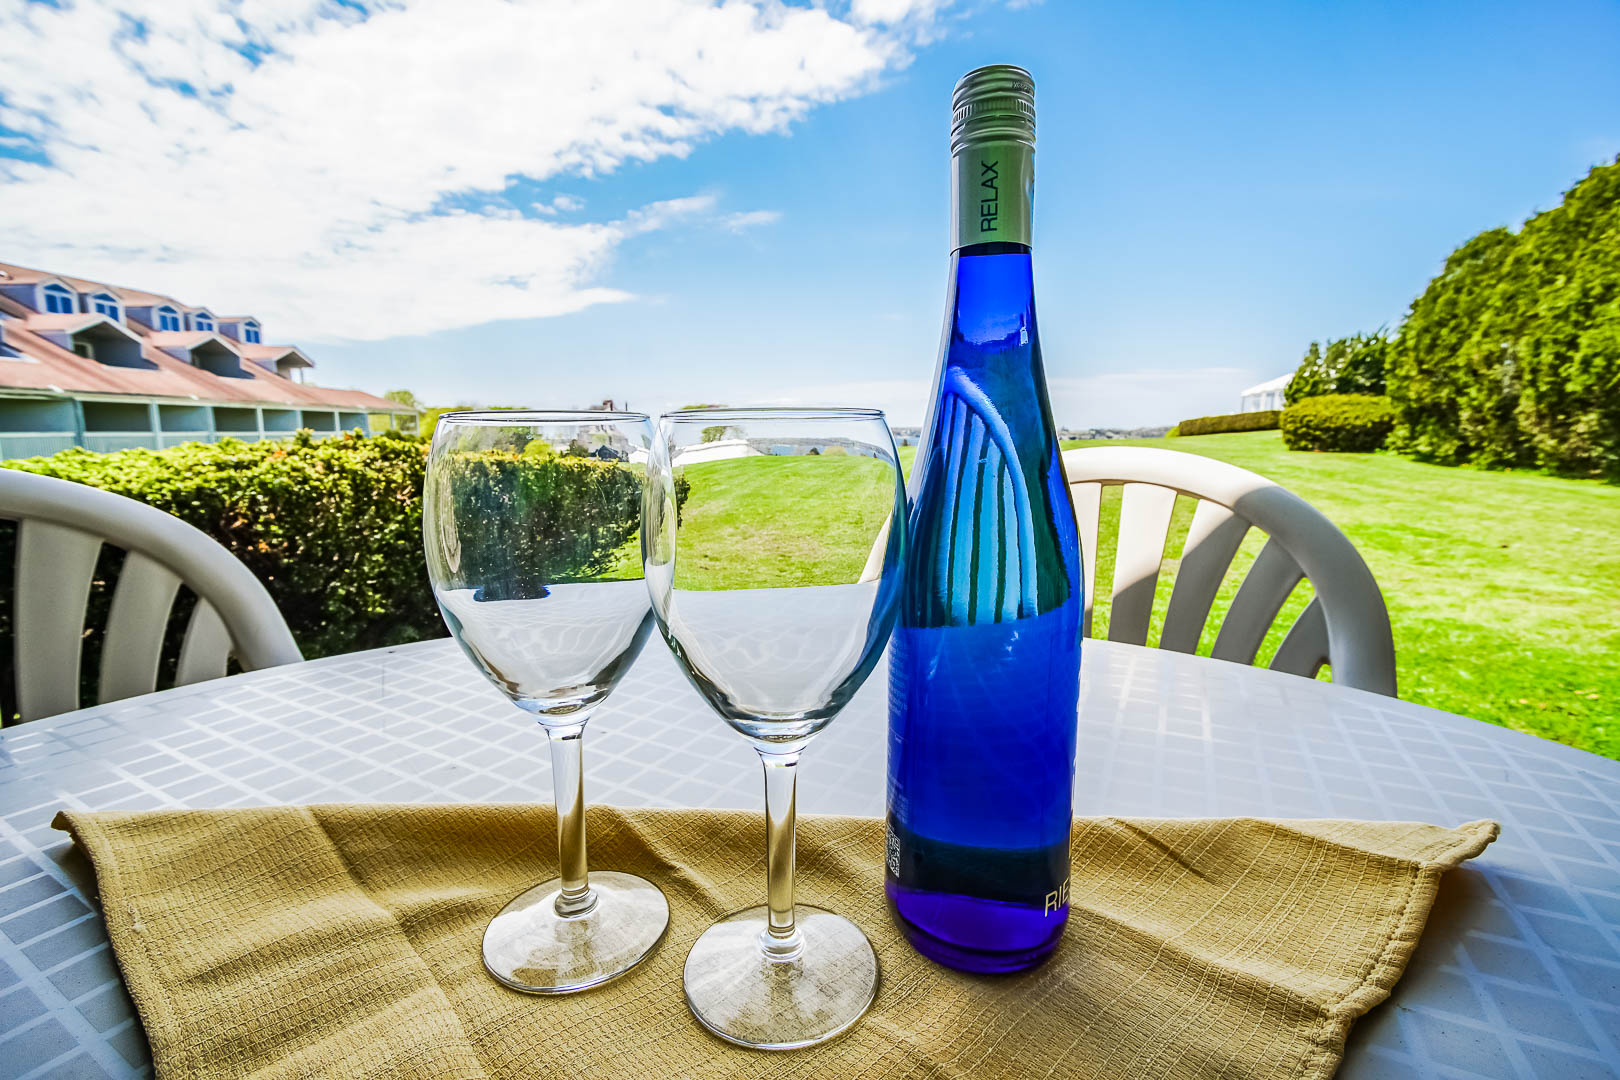 A refreshing balcony view at VRI's Oceancliff Resort in Rhode Island.